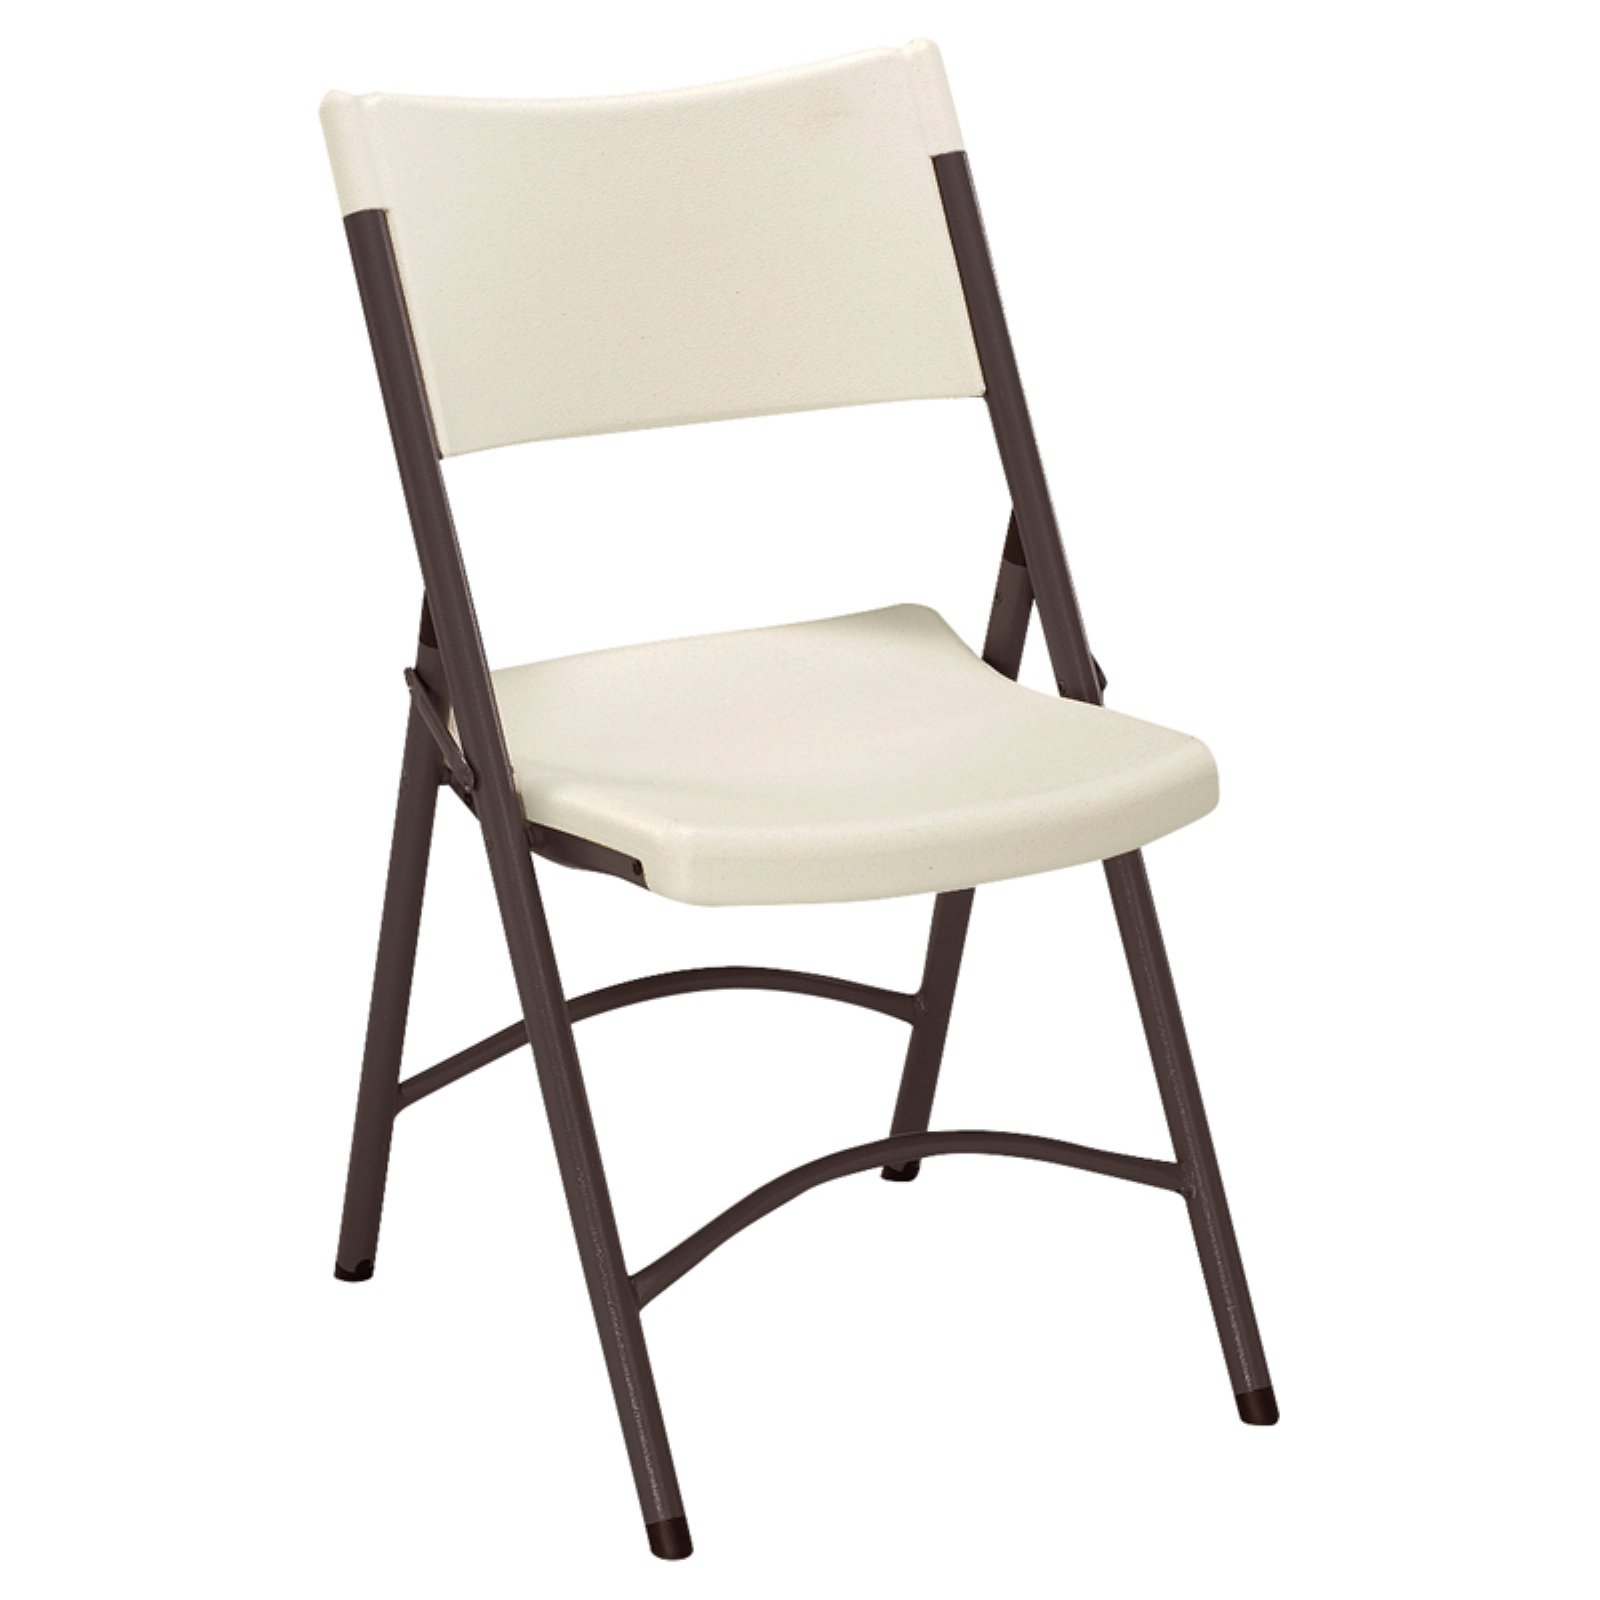 Durable and Heavy Duty Utility blow mold folding chair - 4 PK